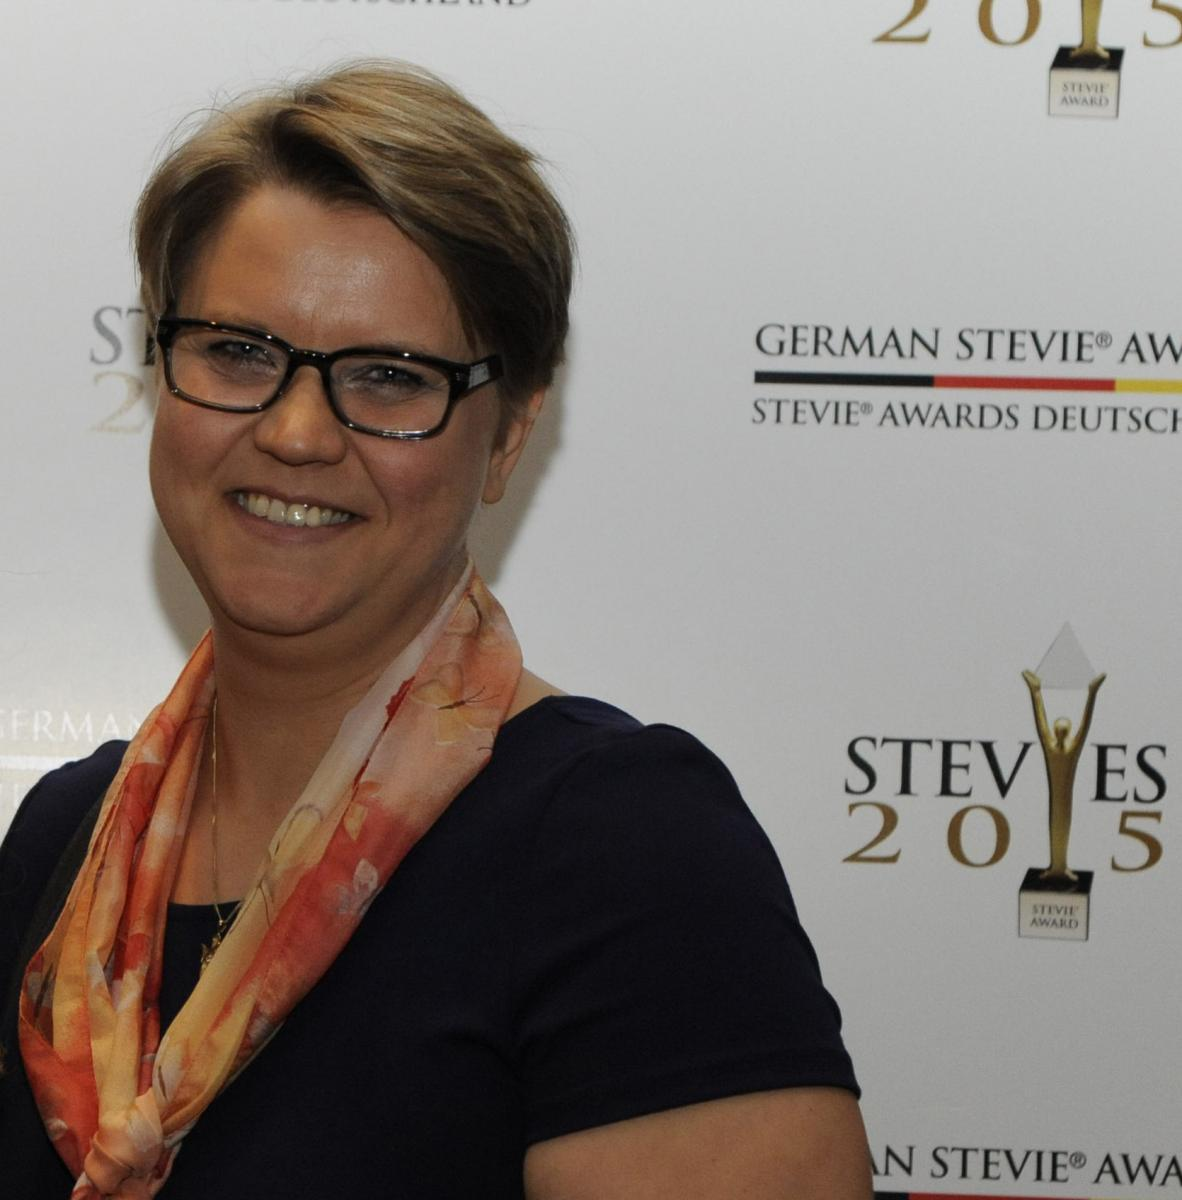 Catrin Beu, PR und Medienarbeit Stevie Awards